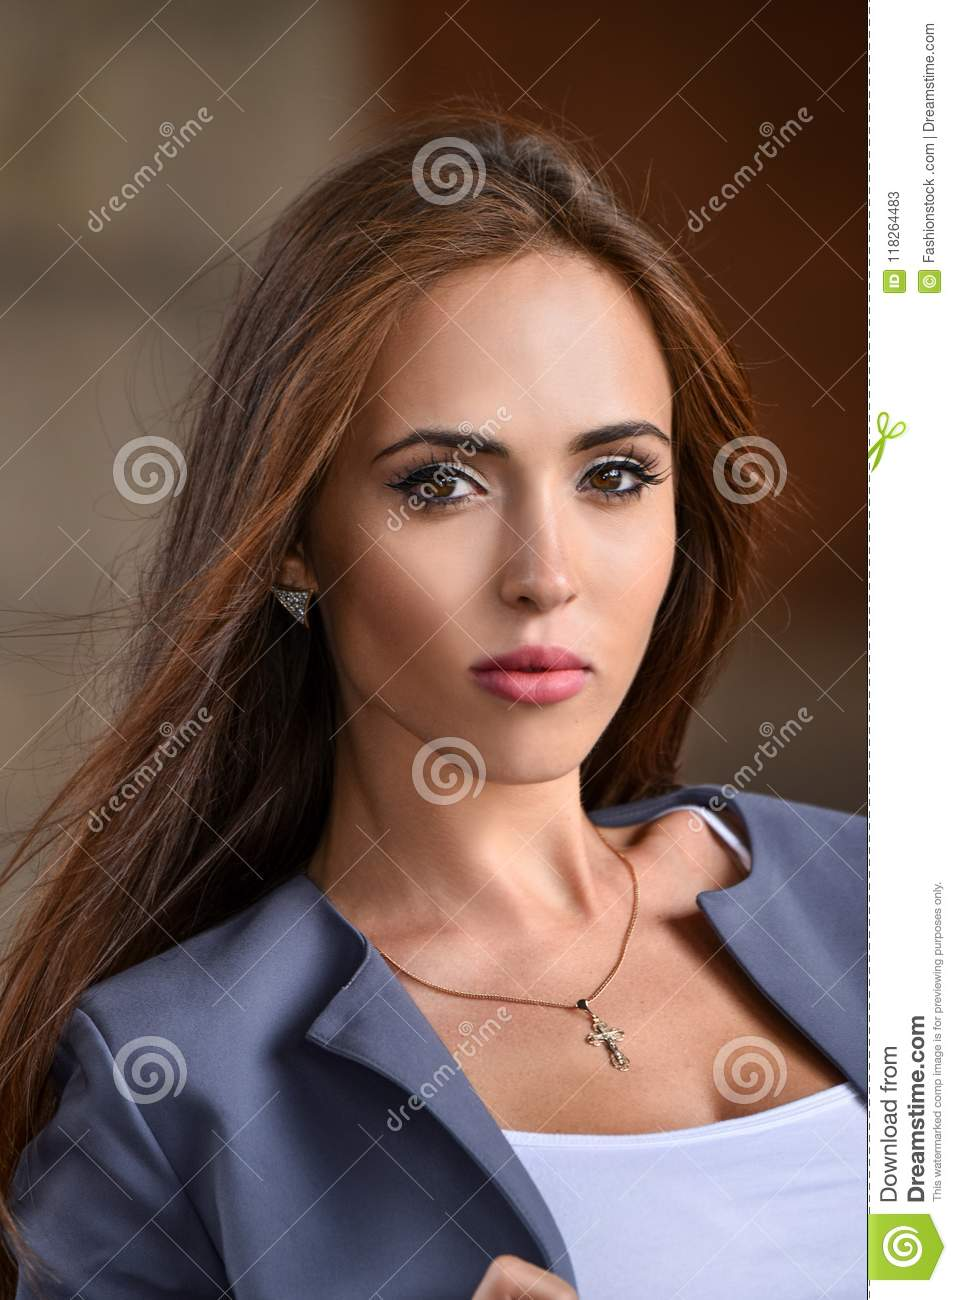 525b682071 Fashion Portrait Of Stunning Young Woman. Stock Image - Image of ...